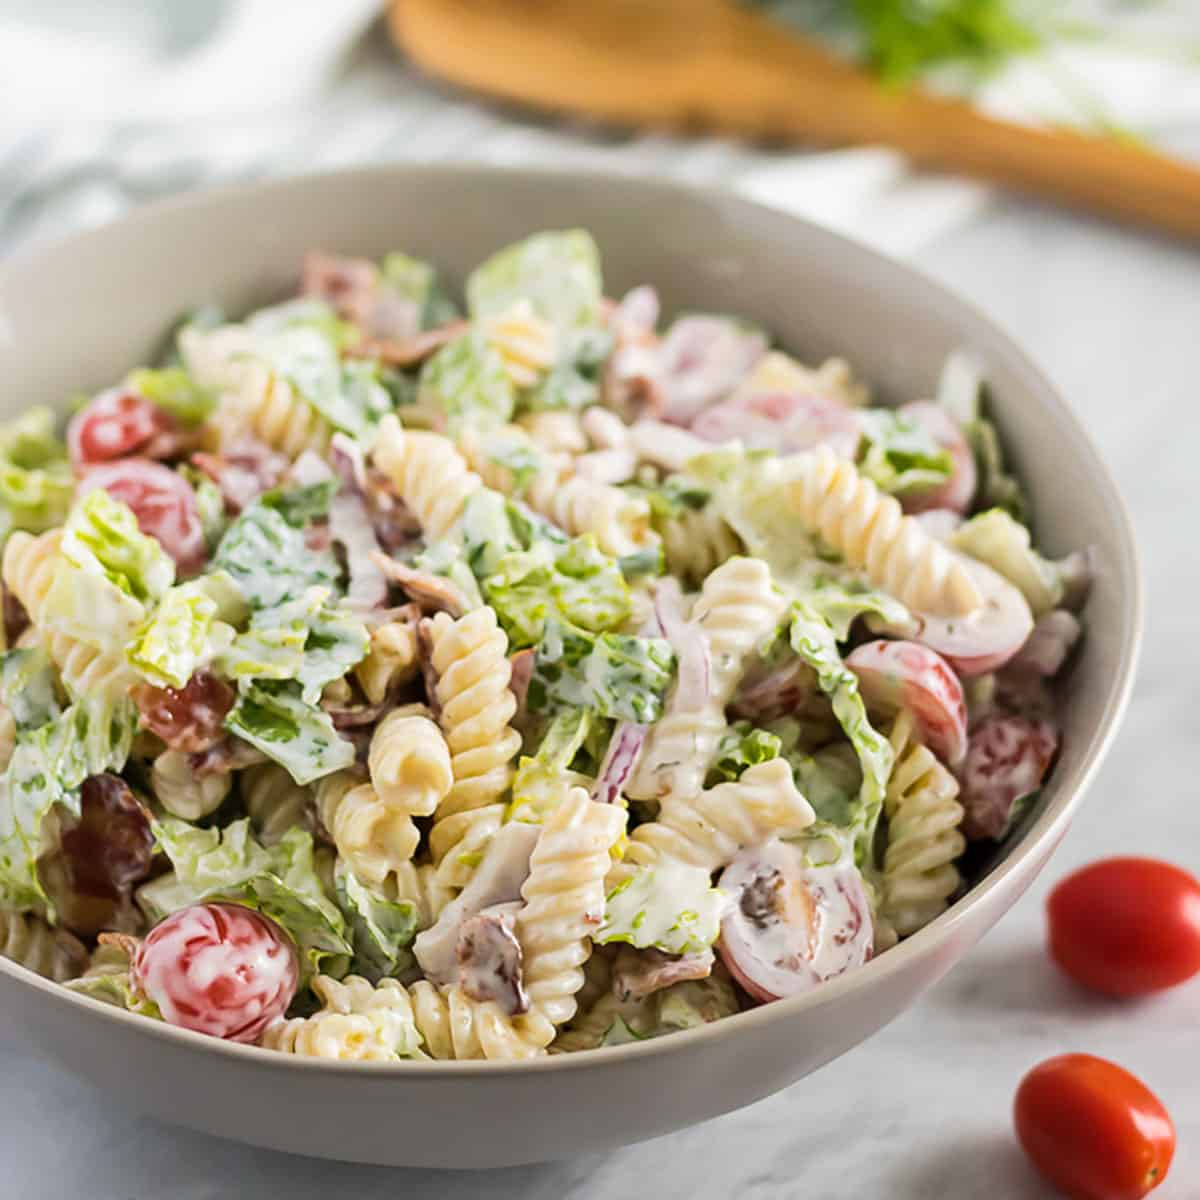 Bowl of BLT pasta salad next to a wooden spoon and tomatoes.